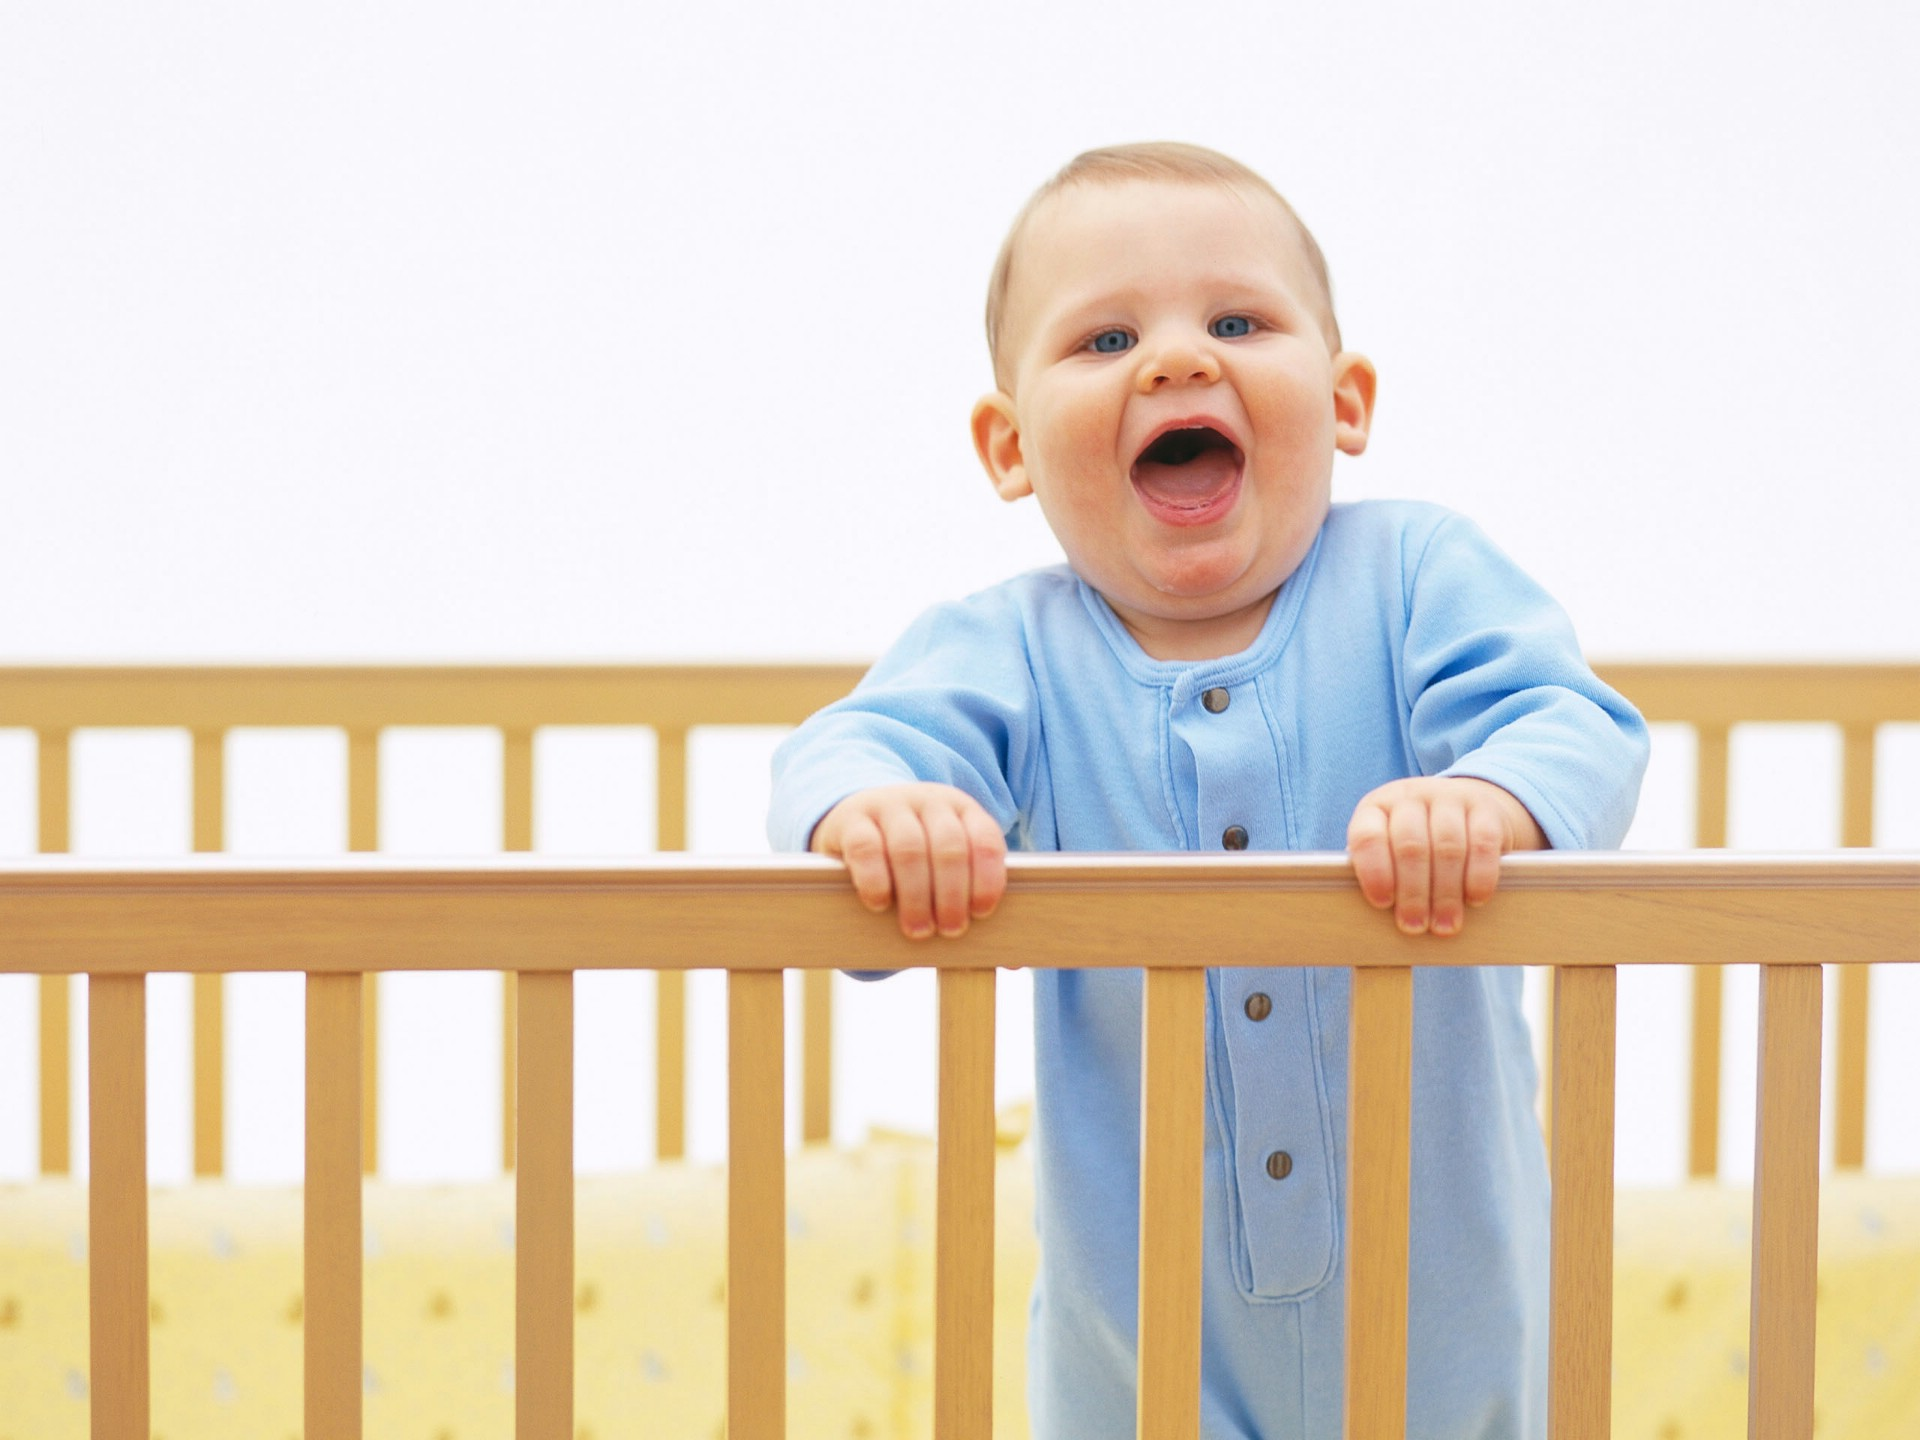 Cute Little Babies on Crib - Cute Little Babies on Crib